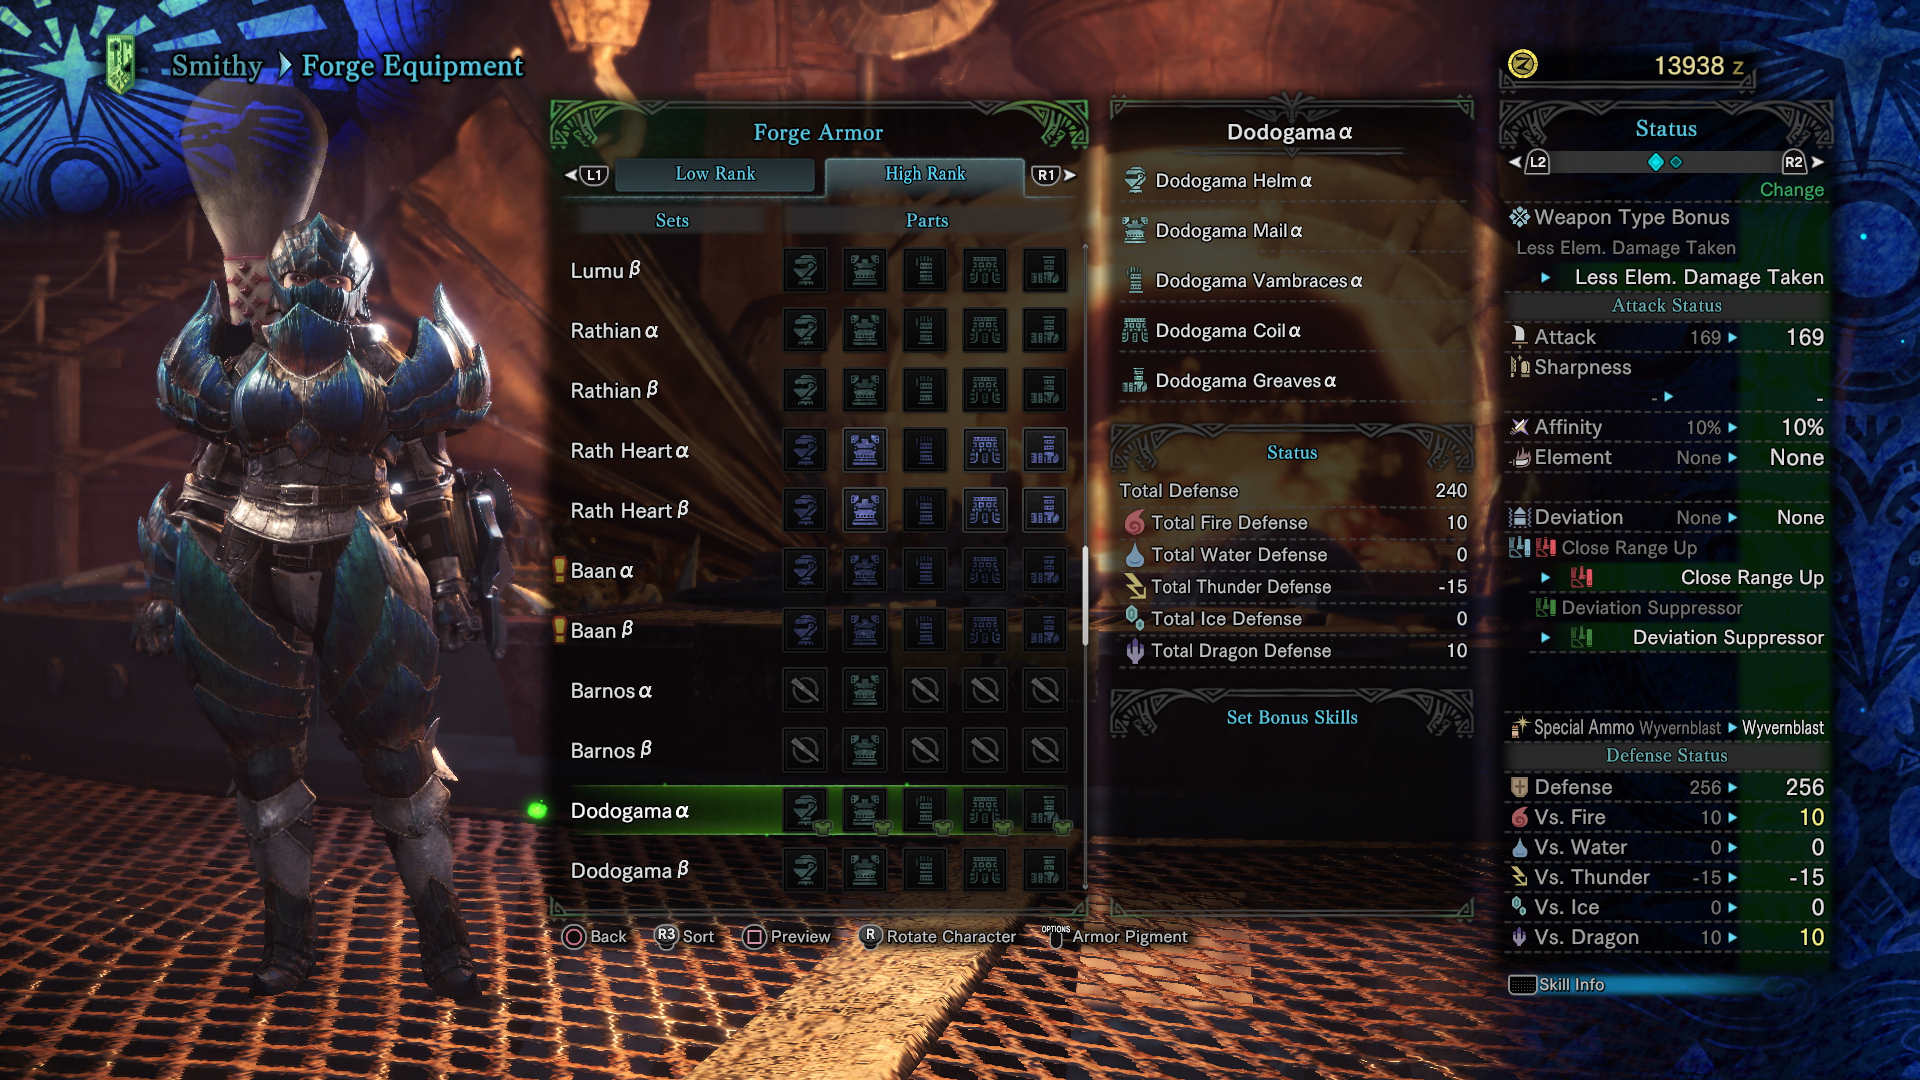 Mhw Decoration Farming Guide Reddit | Decoratingspecial.com